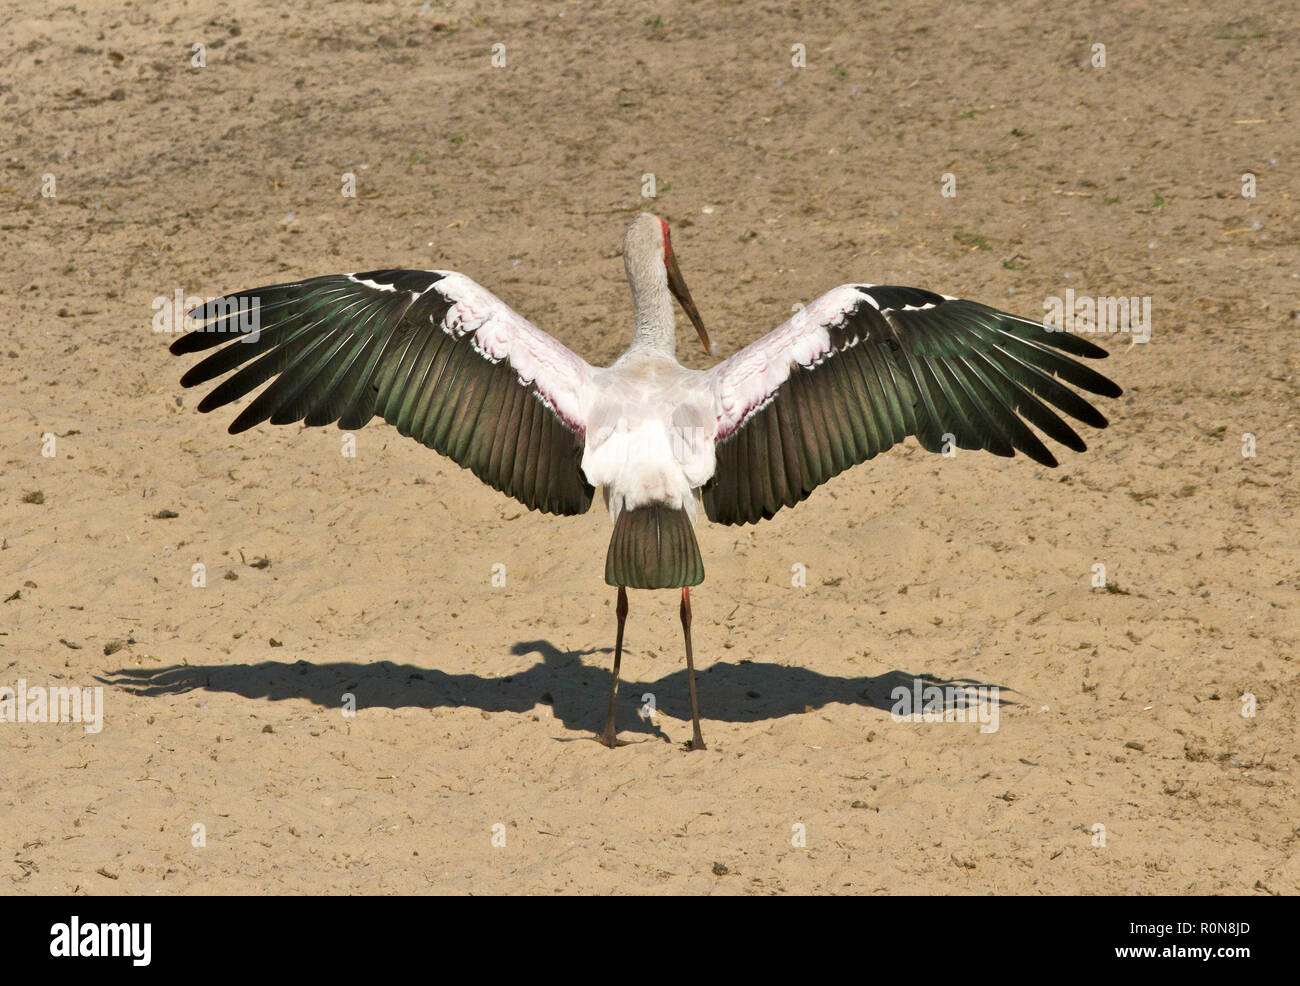 The Yellow-billed Stork has a worldwide distribution in tropical regions and often known as a Wood Stork. They have a fast walk as they wade - Stock Image